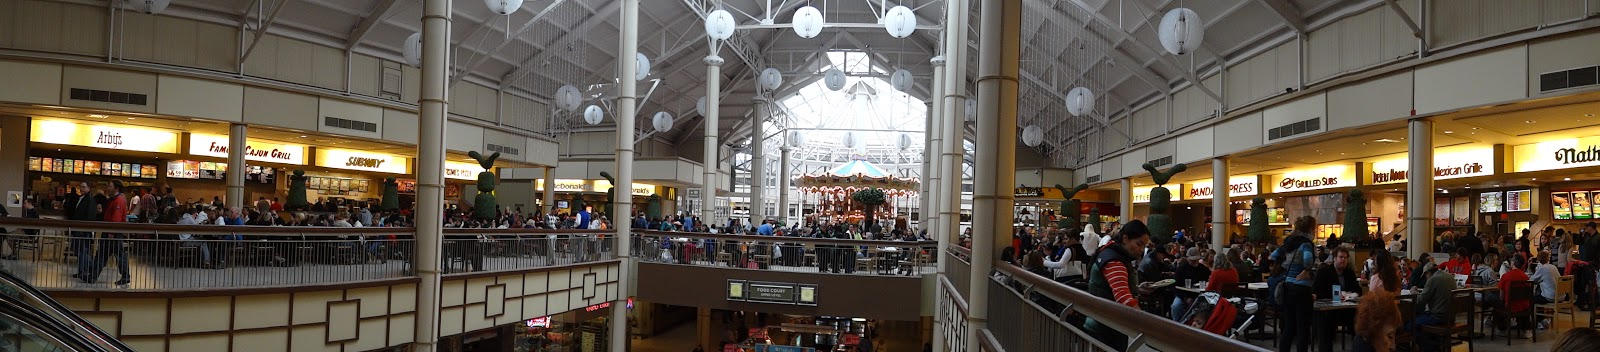 Danbury Fair Mall Food Court